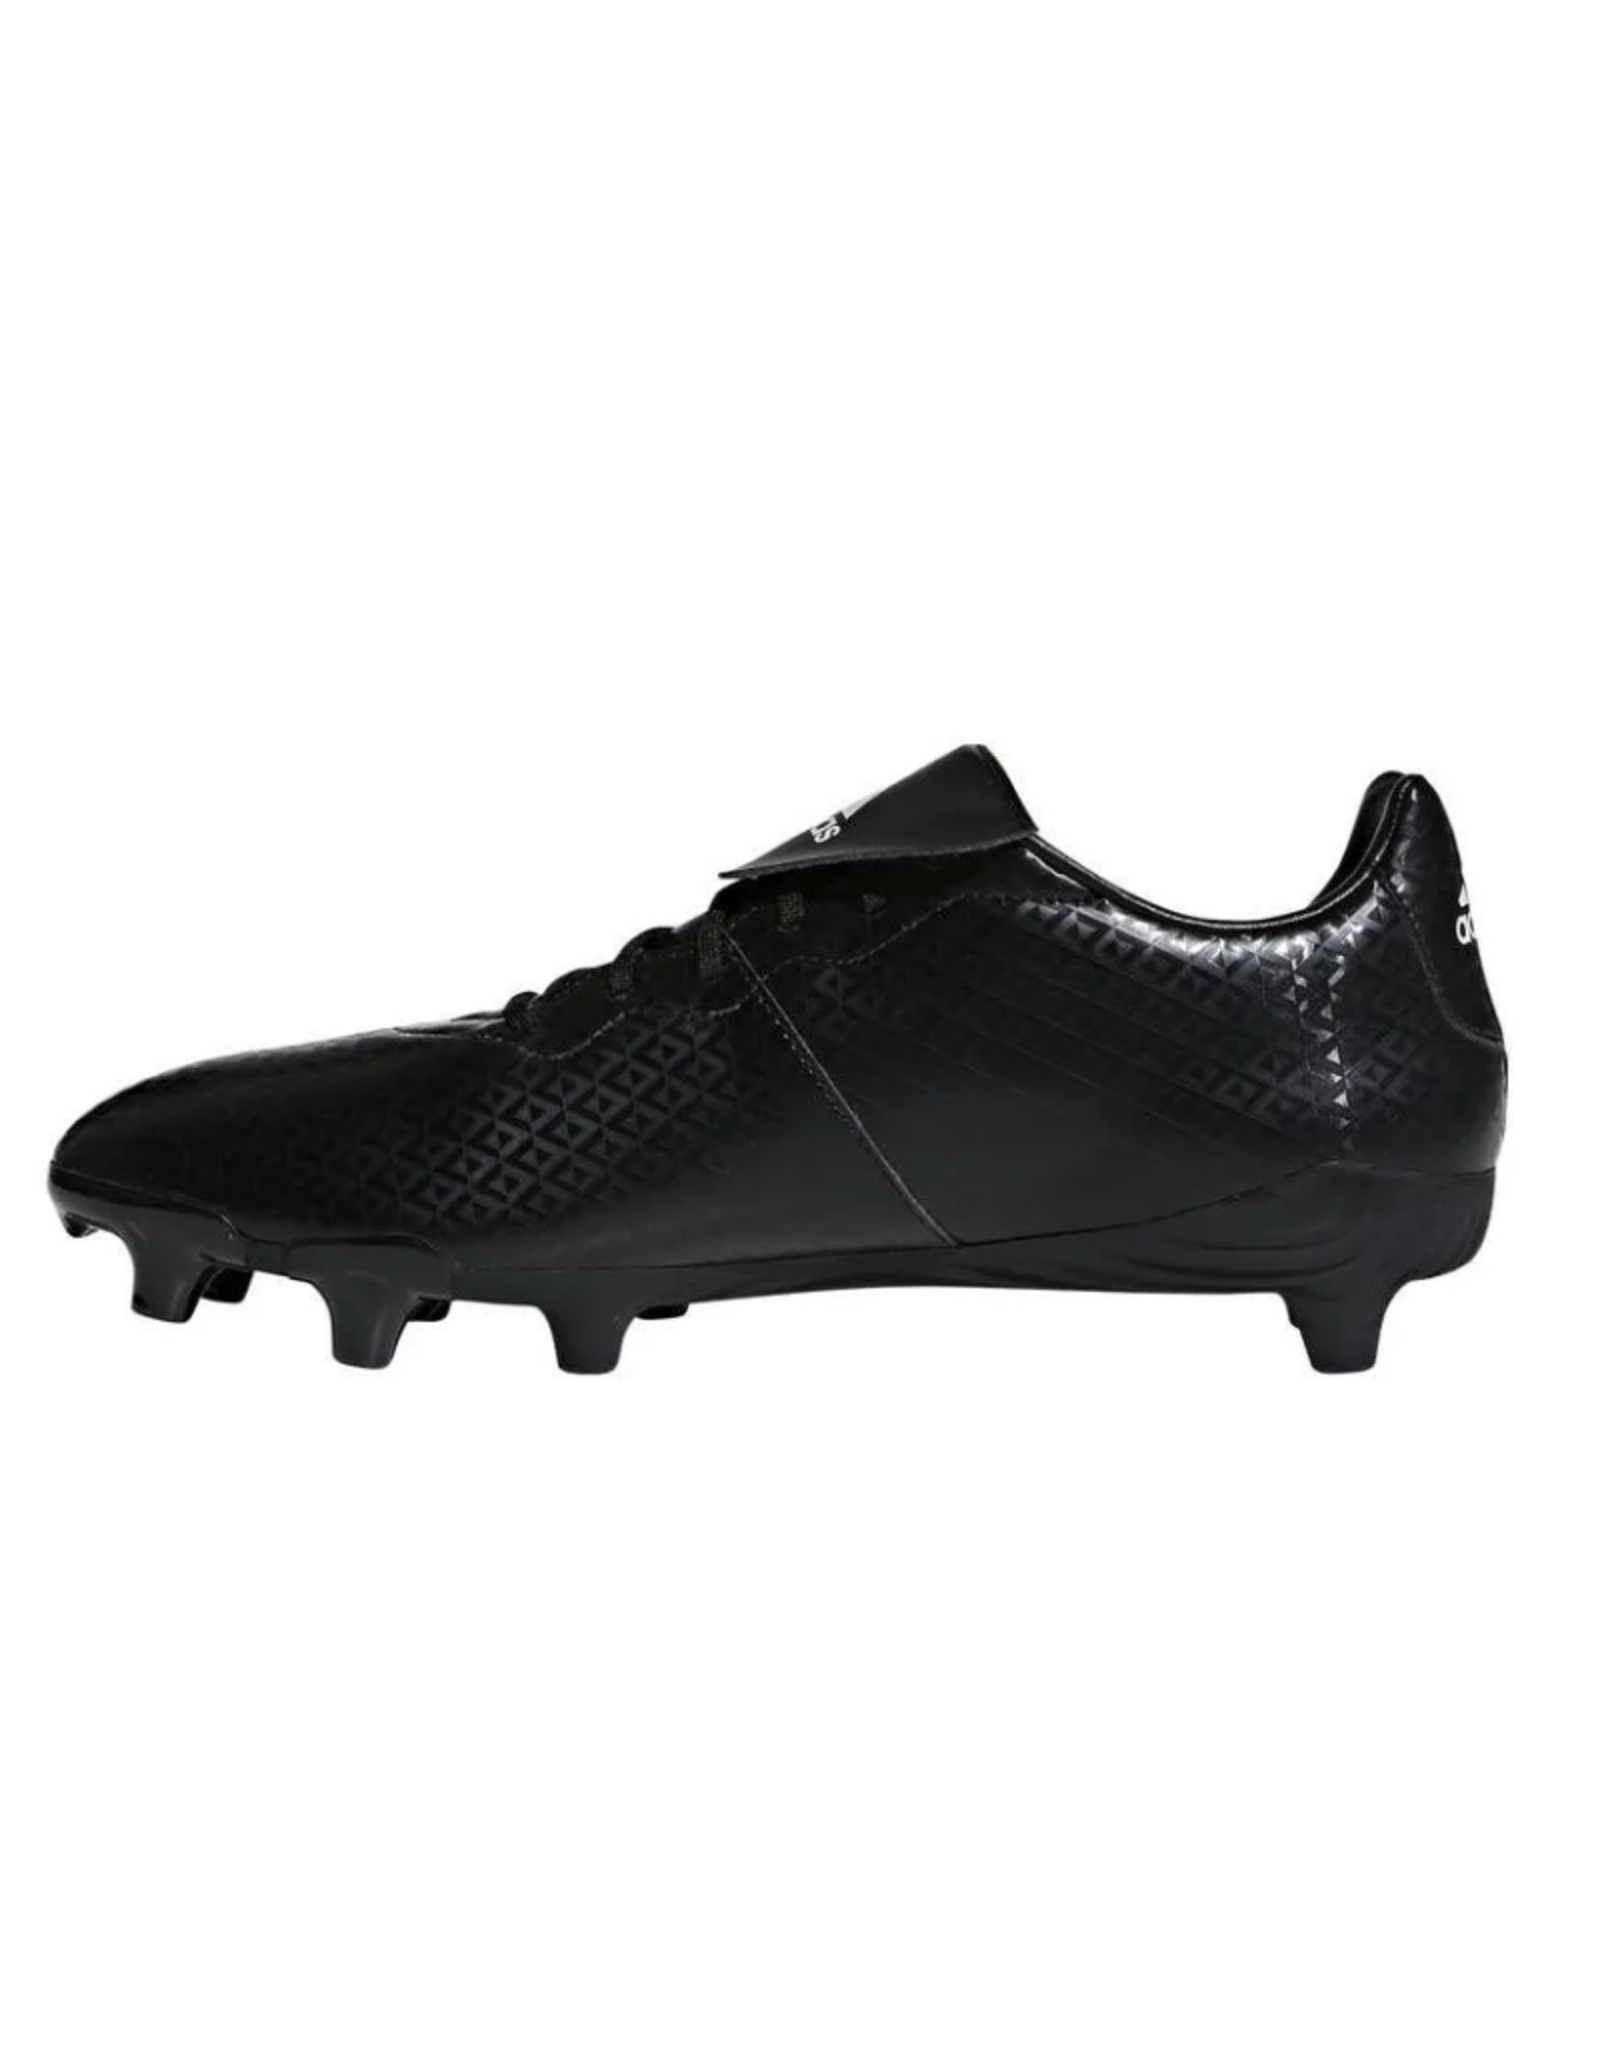 Adidas Adidas Men's Rumble Rugby Cleat Black